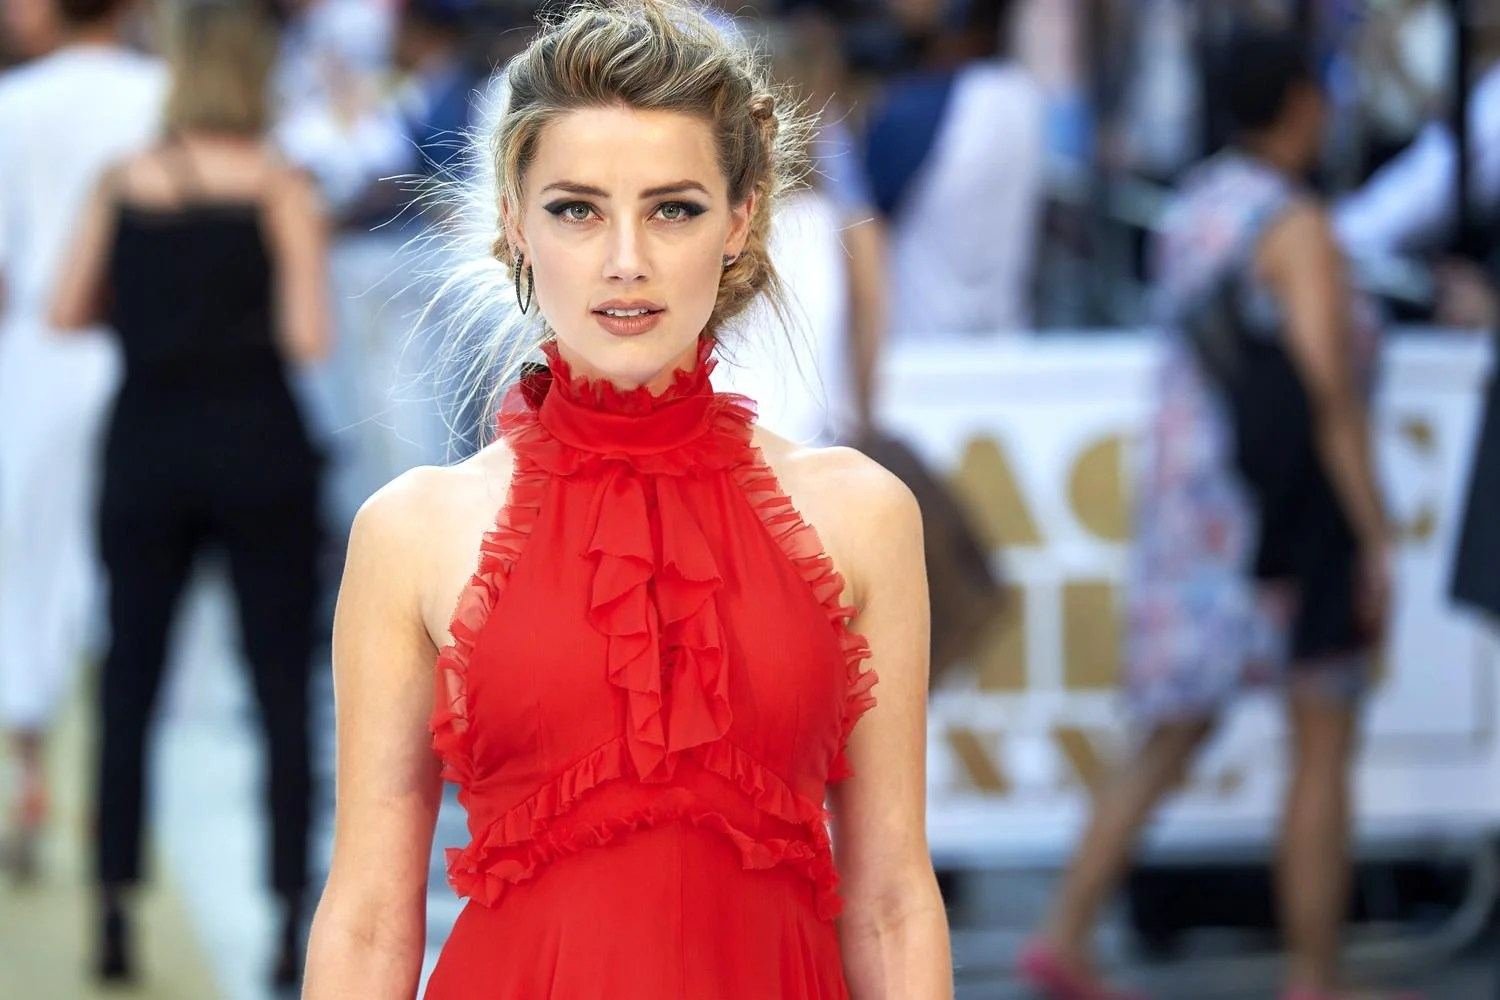 Beautiful Indian Girl Hd Wallpapers 1080p Amber Heard Has The World S Most Beautiful Face Says Phi